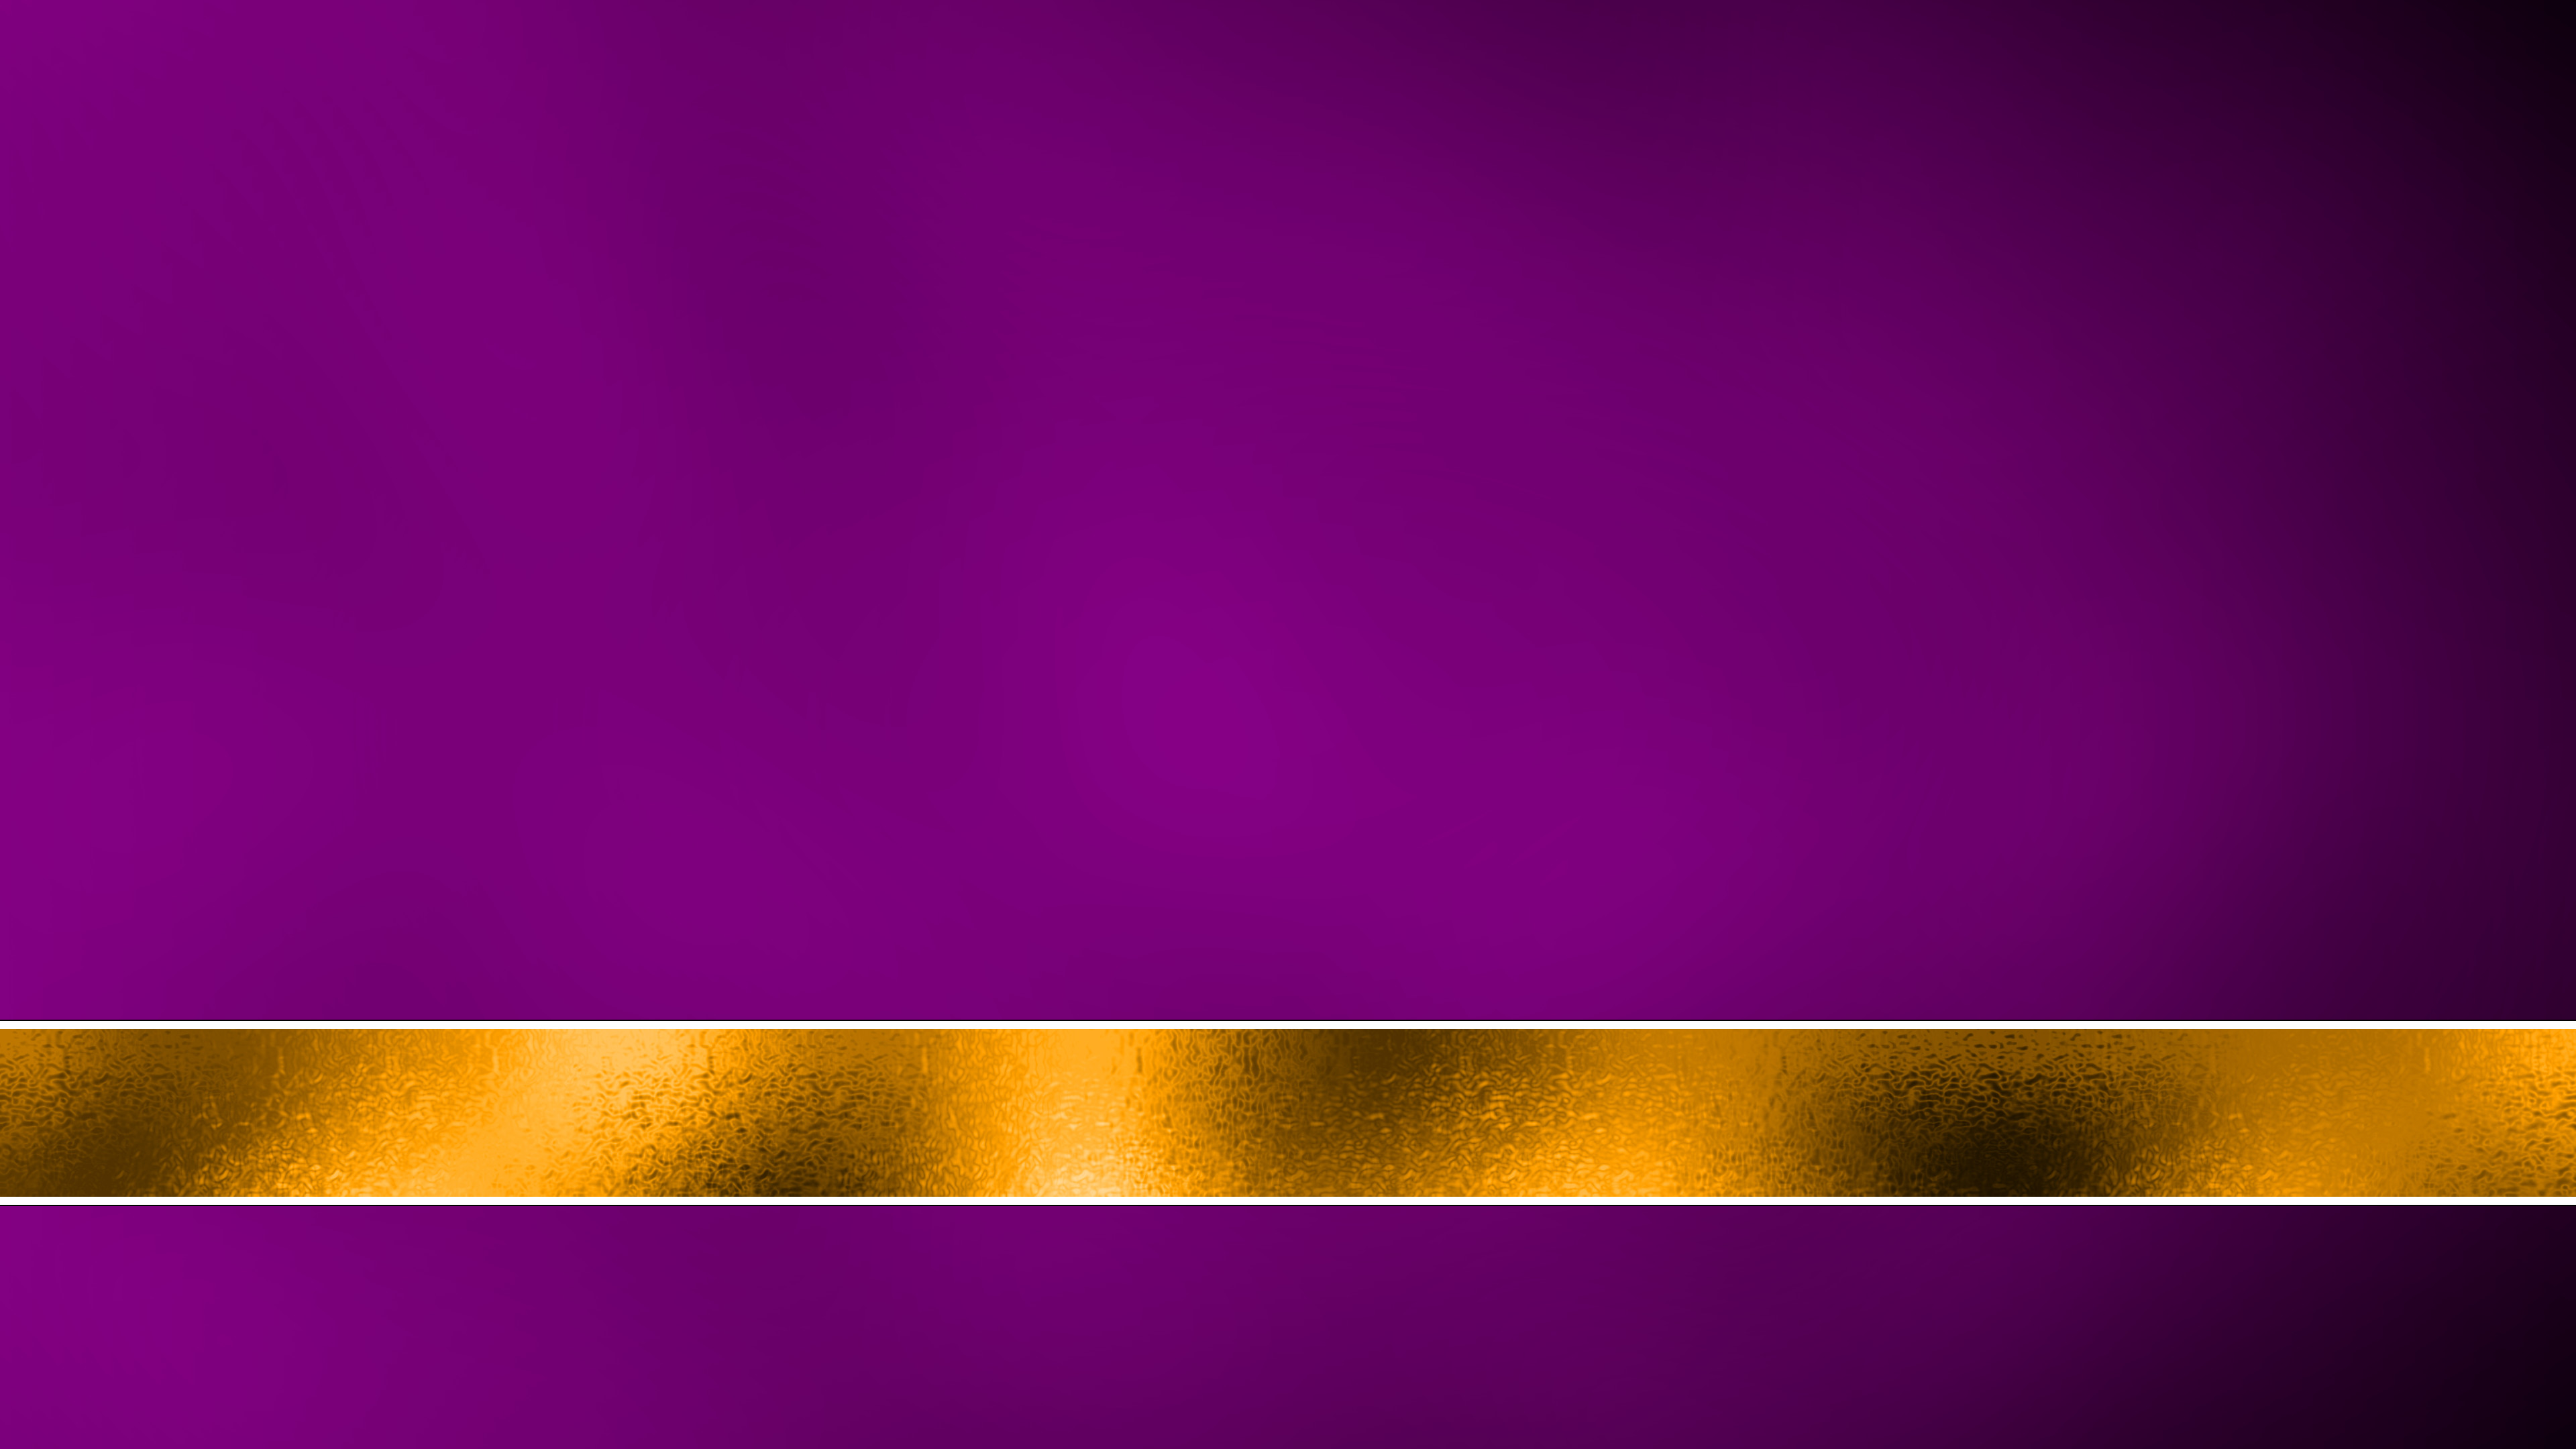 … Purple and Gold 4k Wallpaper by SirLavaH